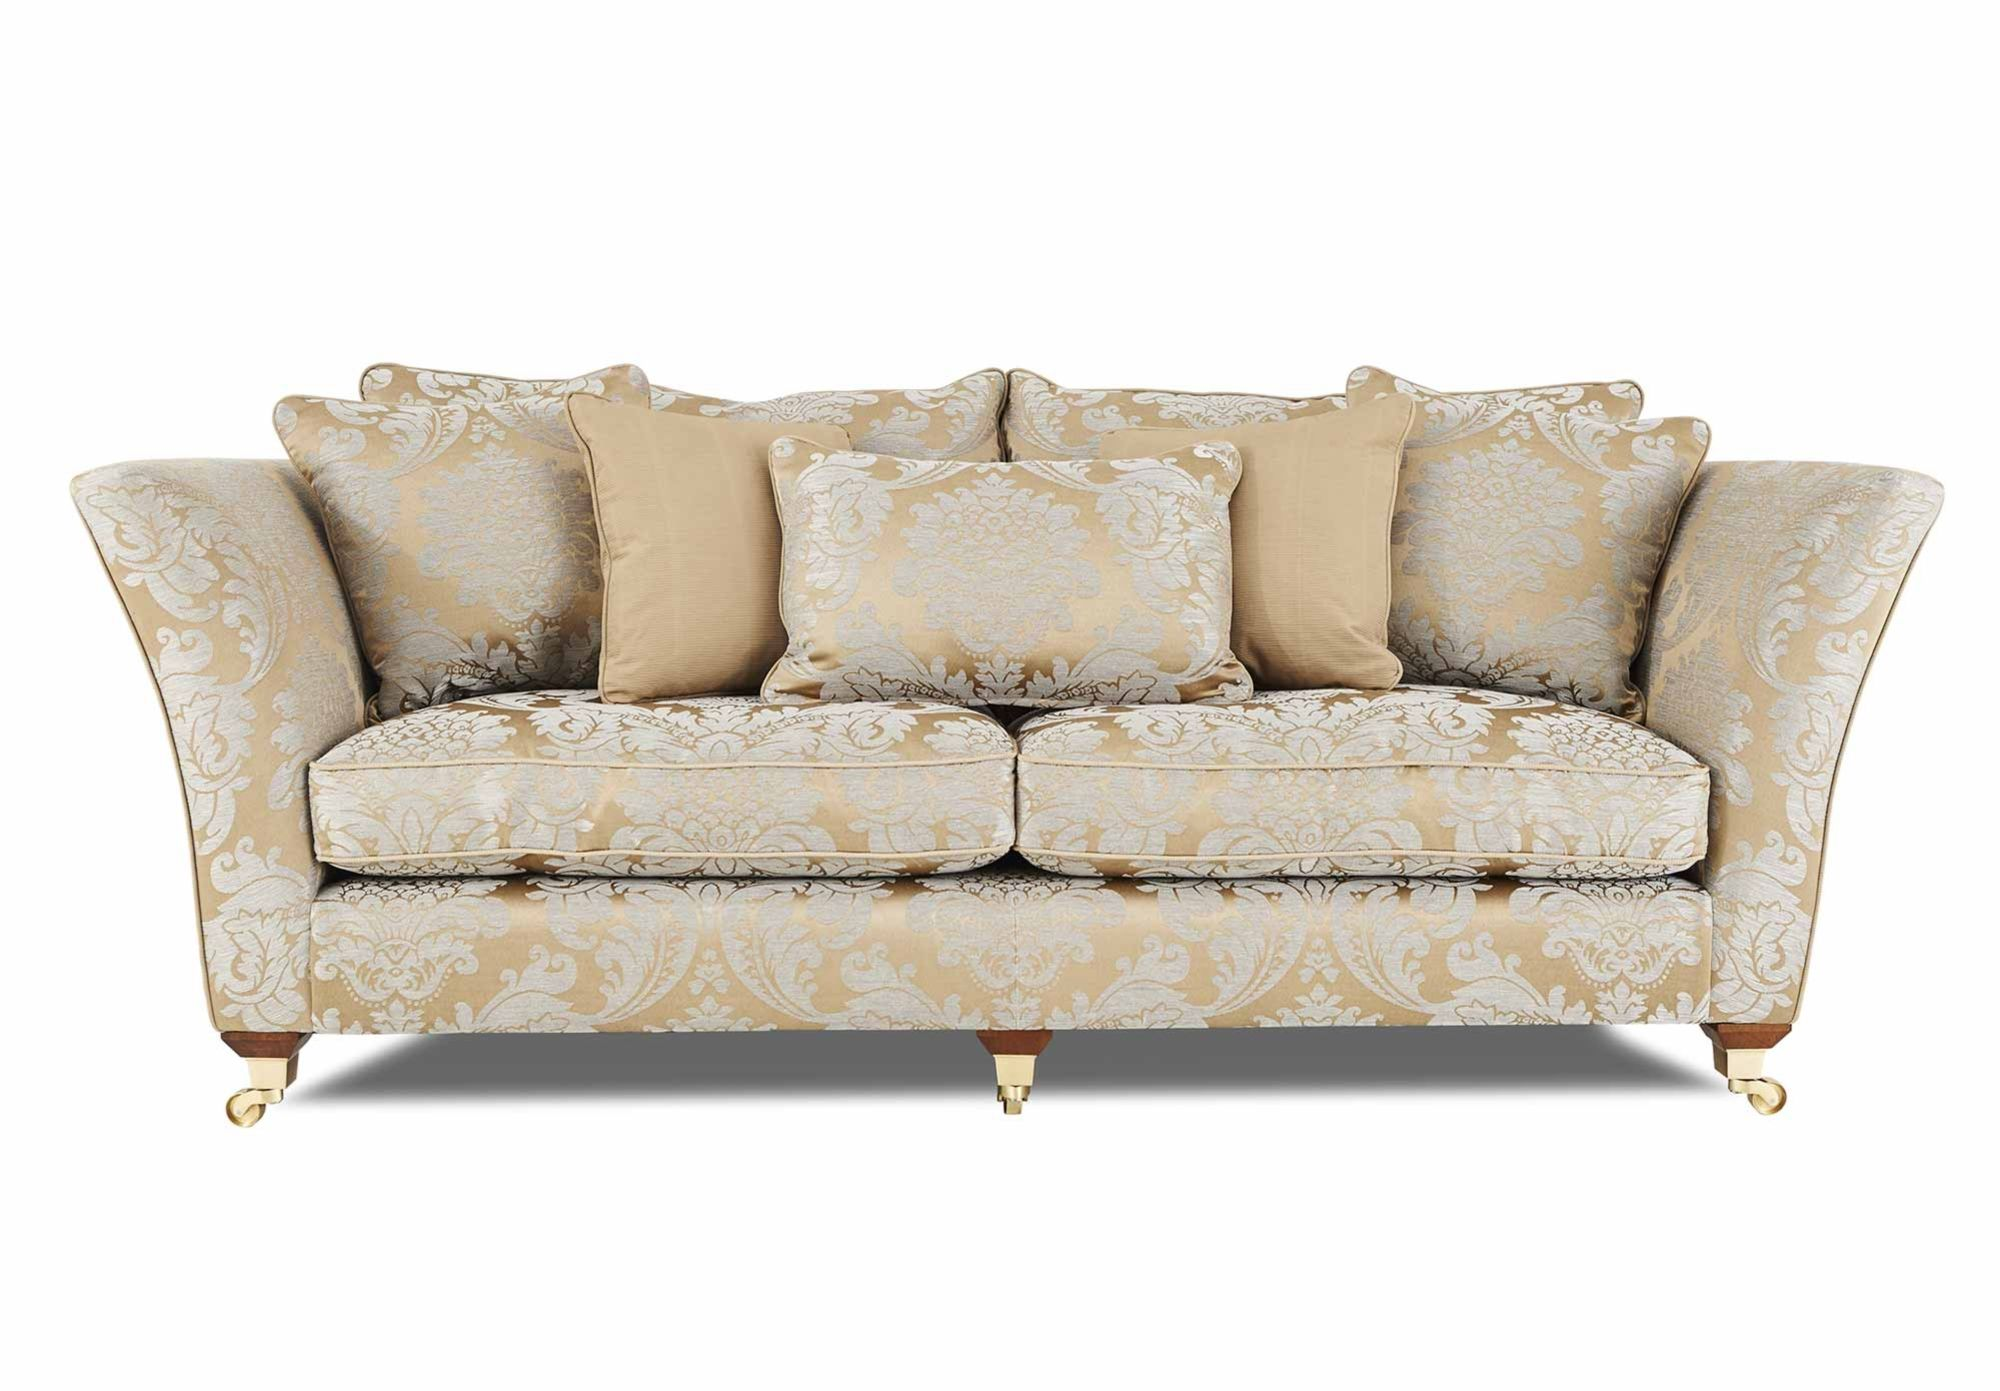 lovely sofa covers at walmart construction-Best Of sofa Covers at Walmart Portrait